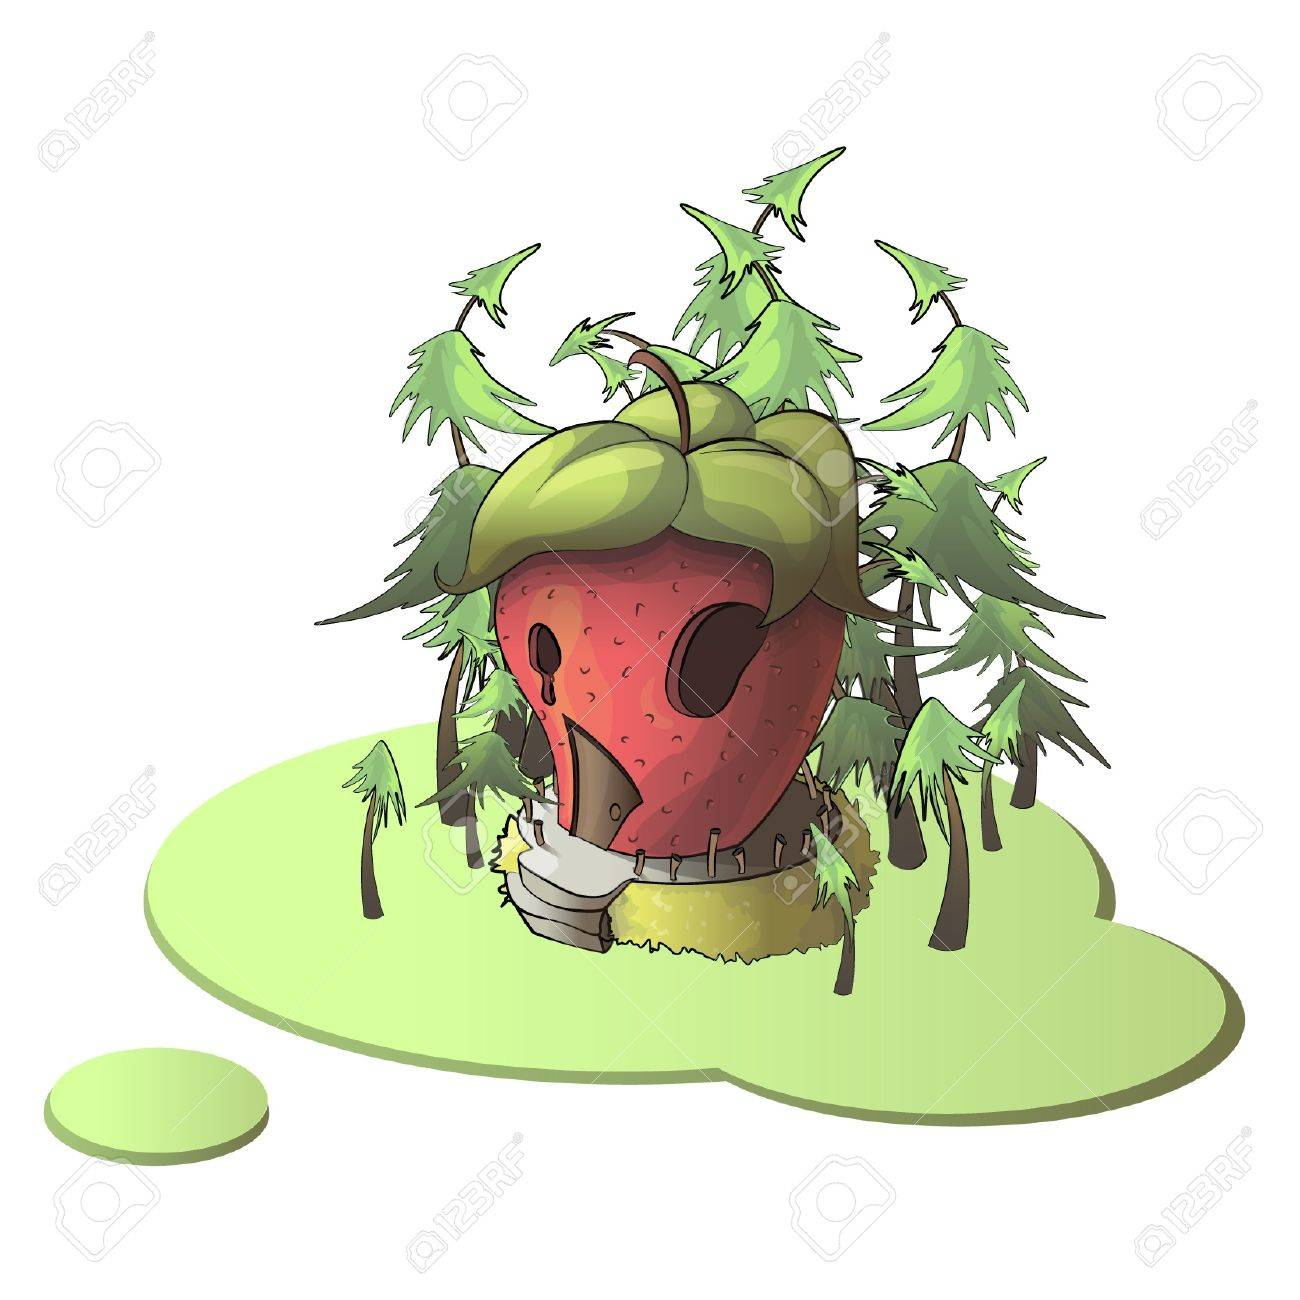 Strawberry house on isolated background illustration Stock Vector - 17406962